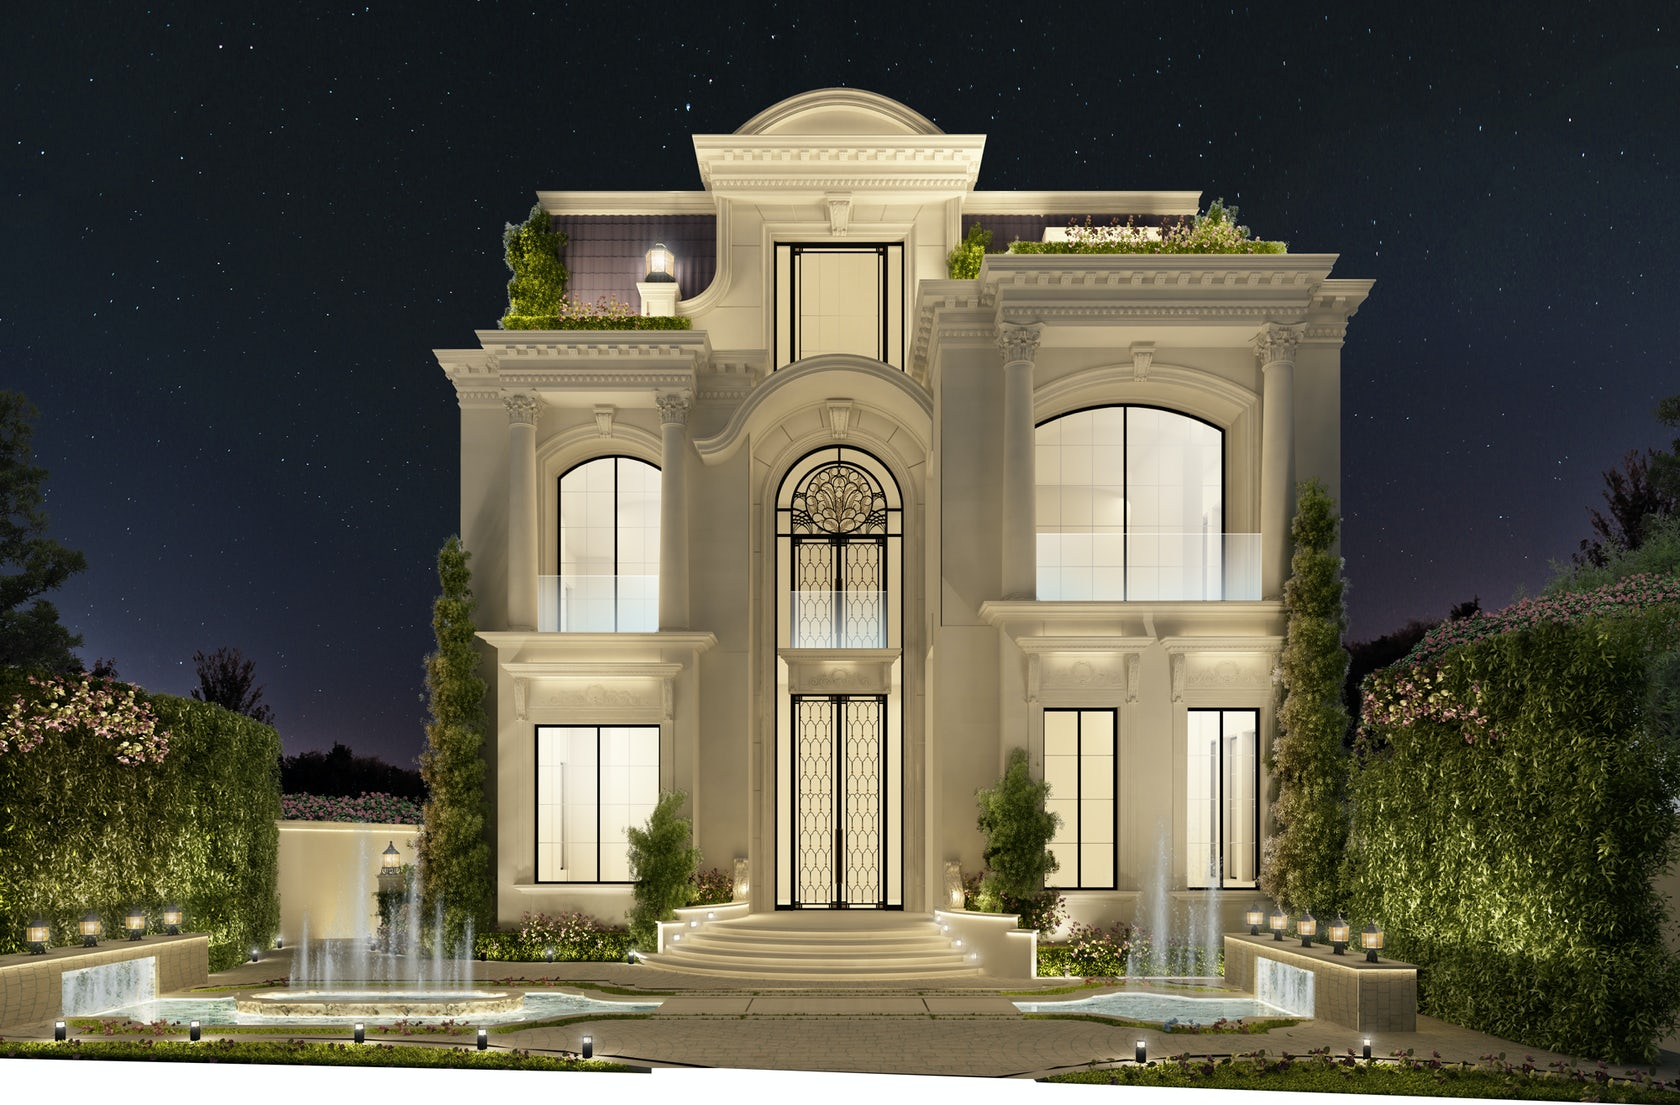 Ions design architizer for Architecture firms in qatar